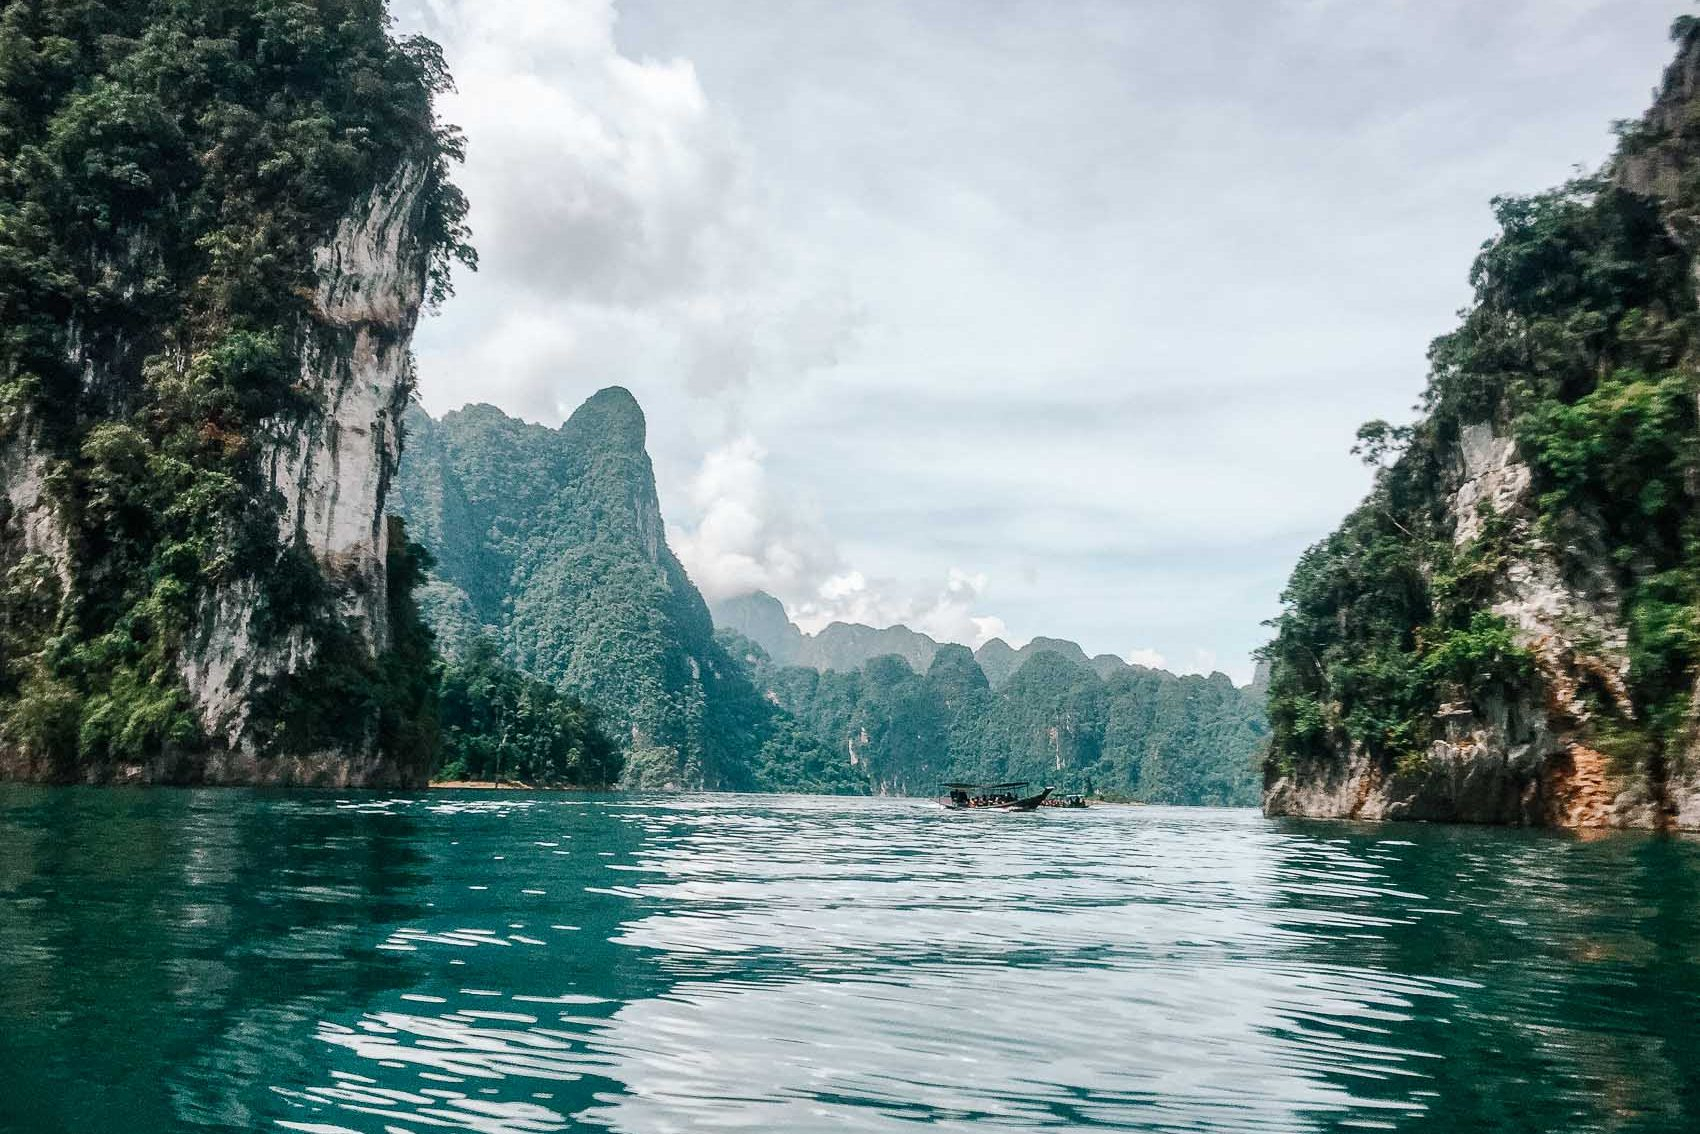 Cheow Larn Lake at Khao Sok National Park in Thailand - bucket list travel